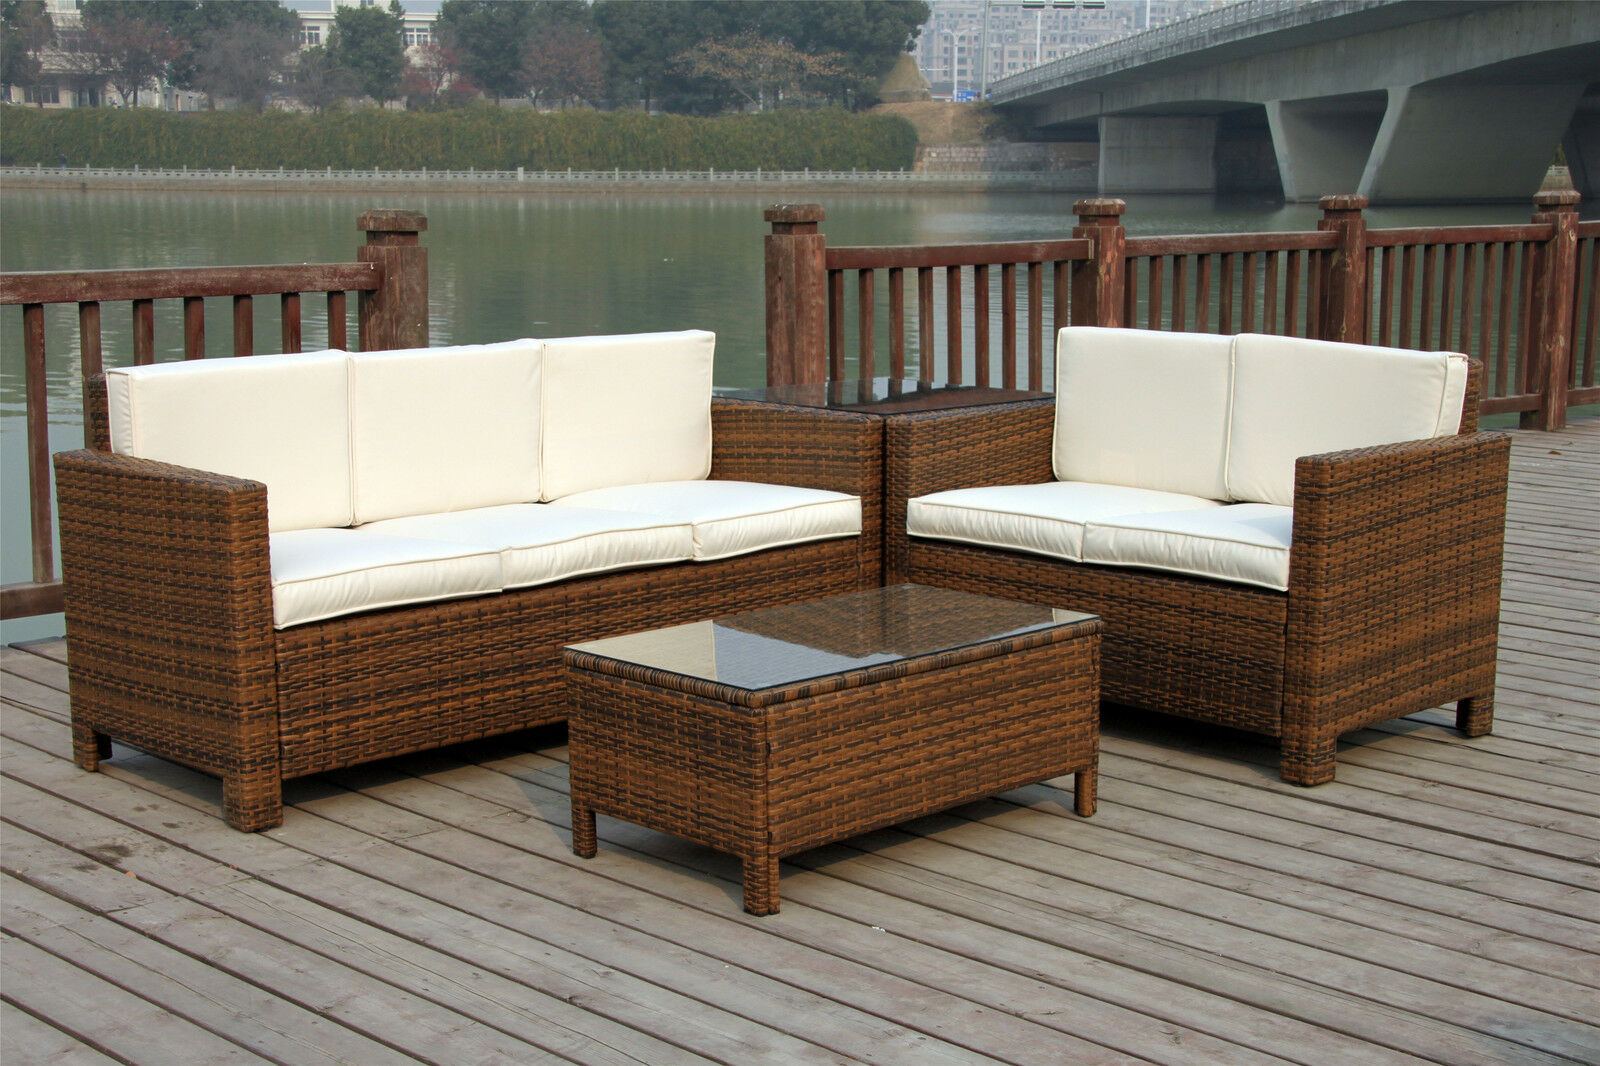 Rattan garden outdoor wicker patio furniture conservatory for Outdoor wicker patio furniture